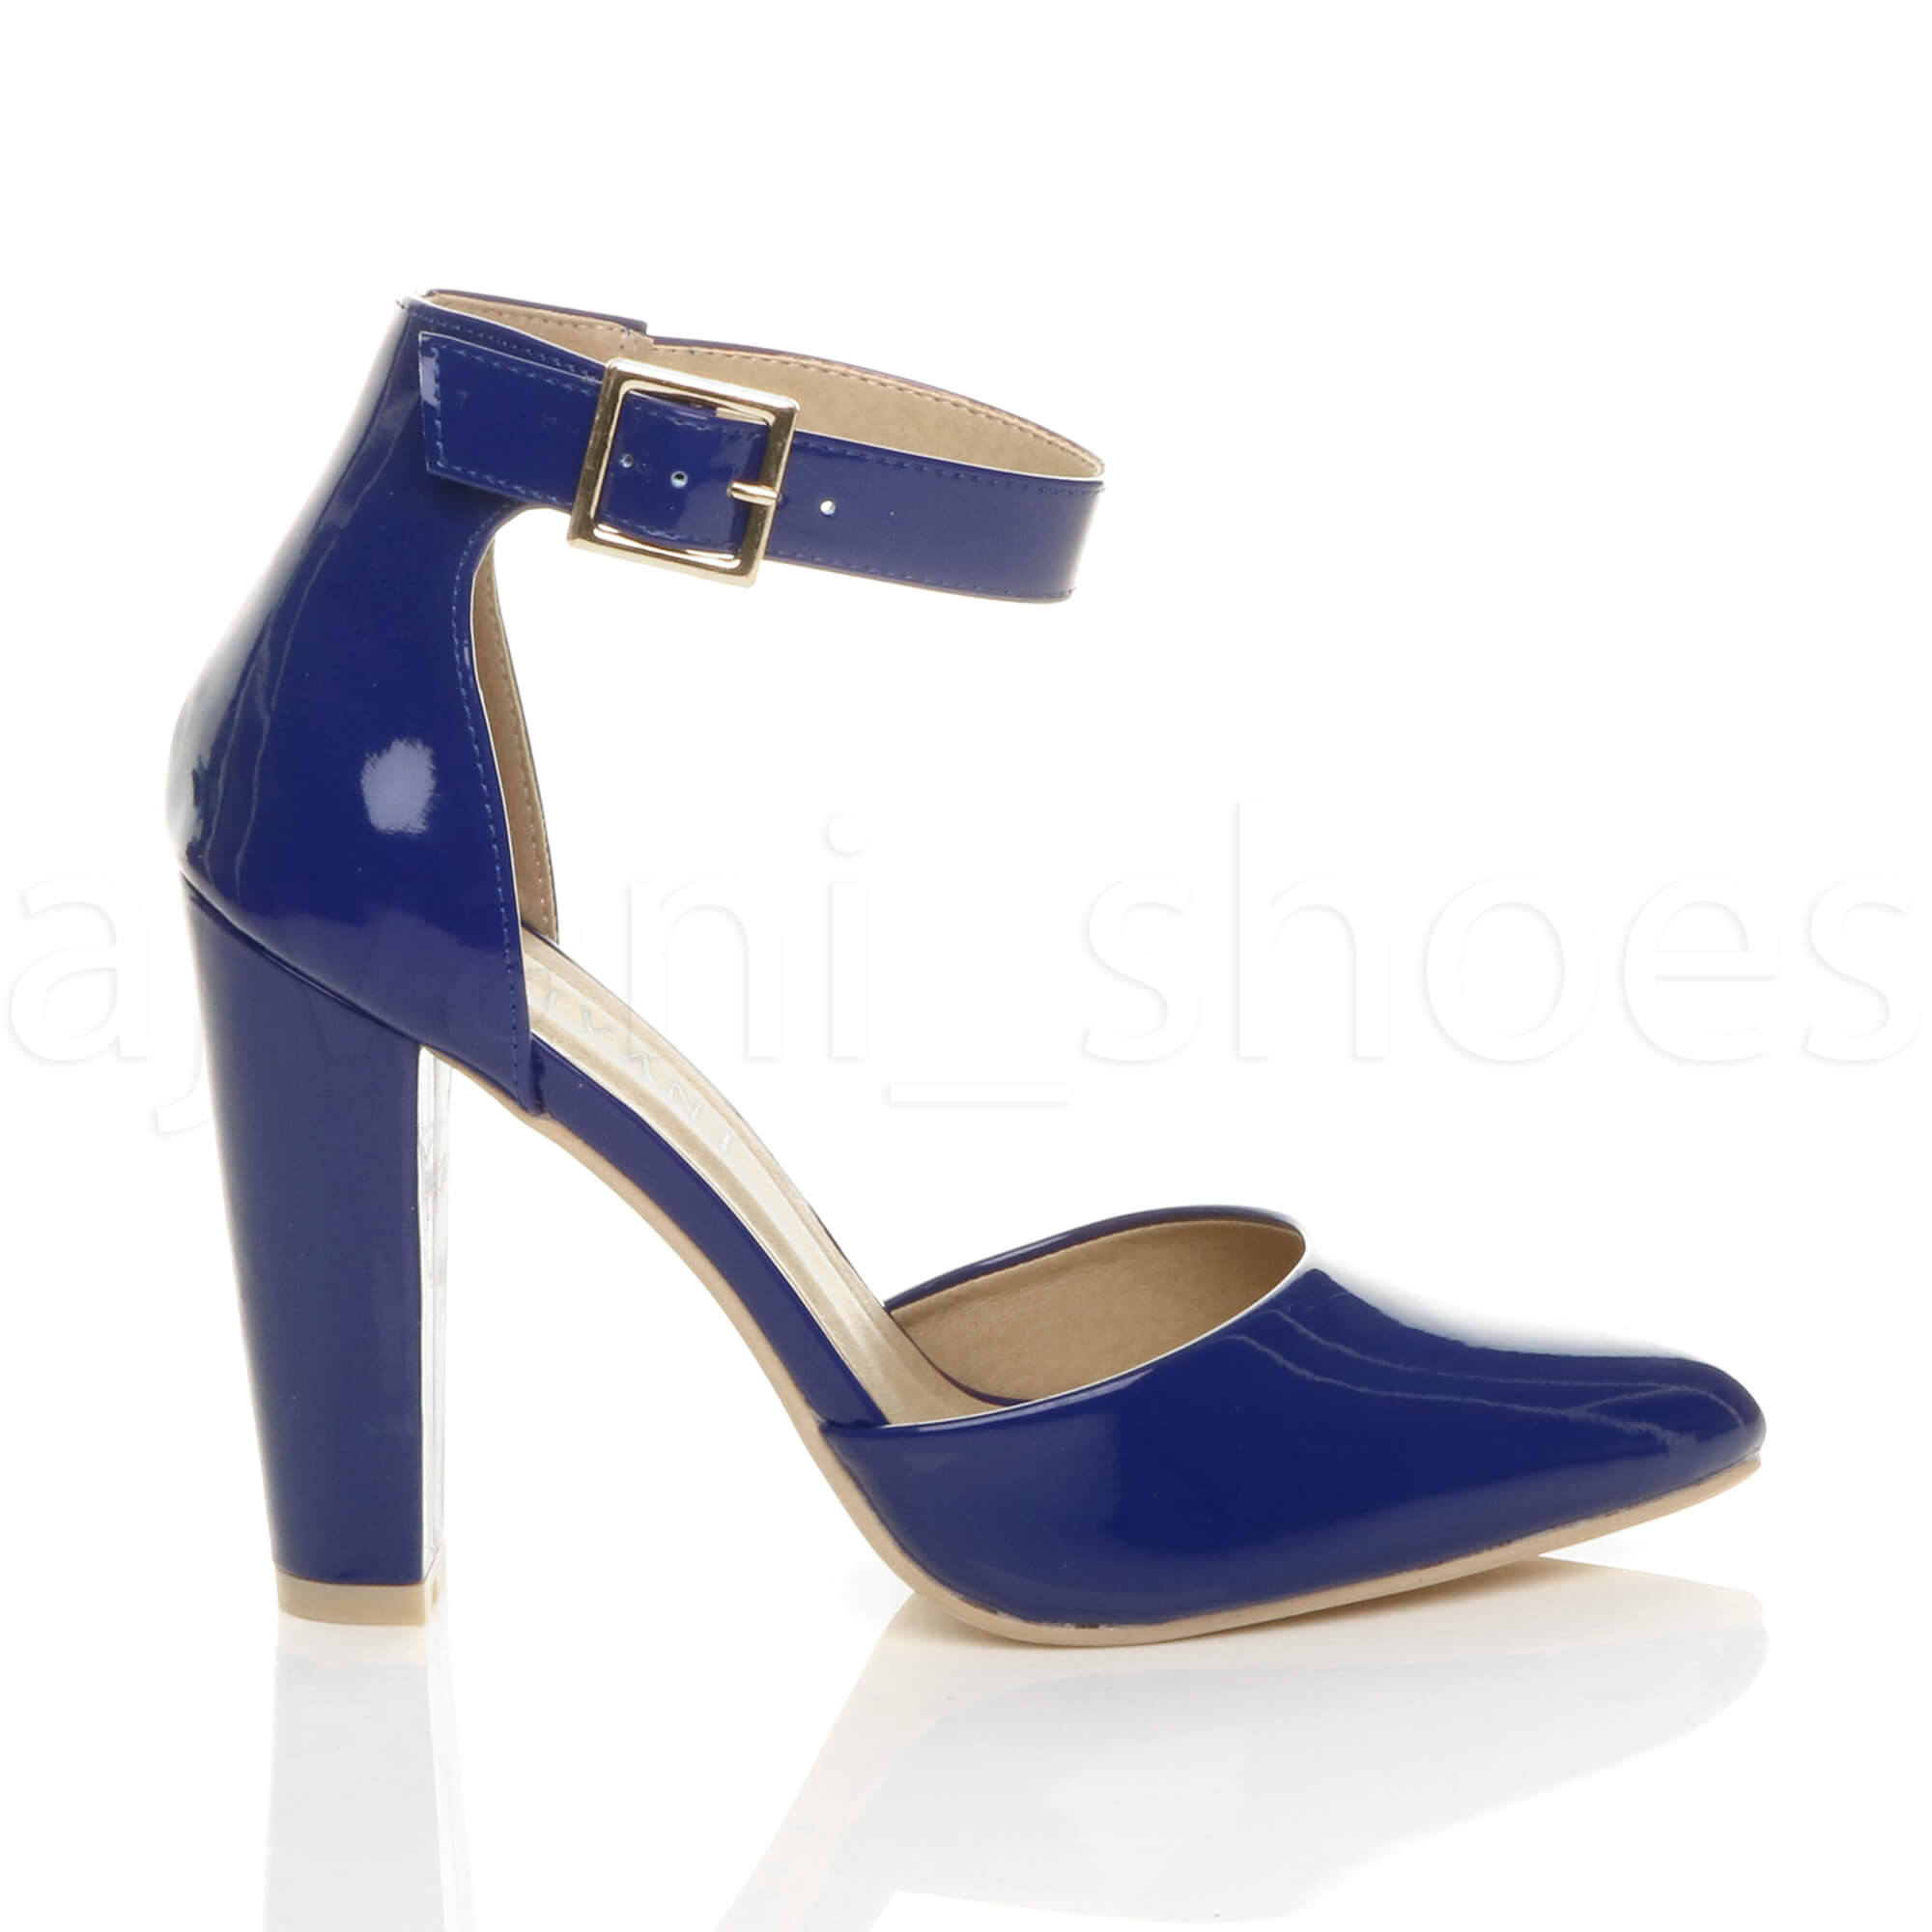 WOMENS-LADIES-HIGH-BLOCK-HEEL-ANKLE-STRAP-BUCKLE-POINTED-COURT-SHOES-SIZE thumbnail 31